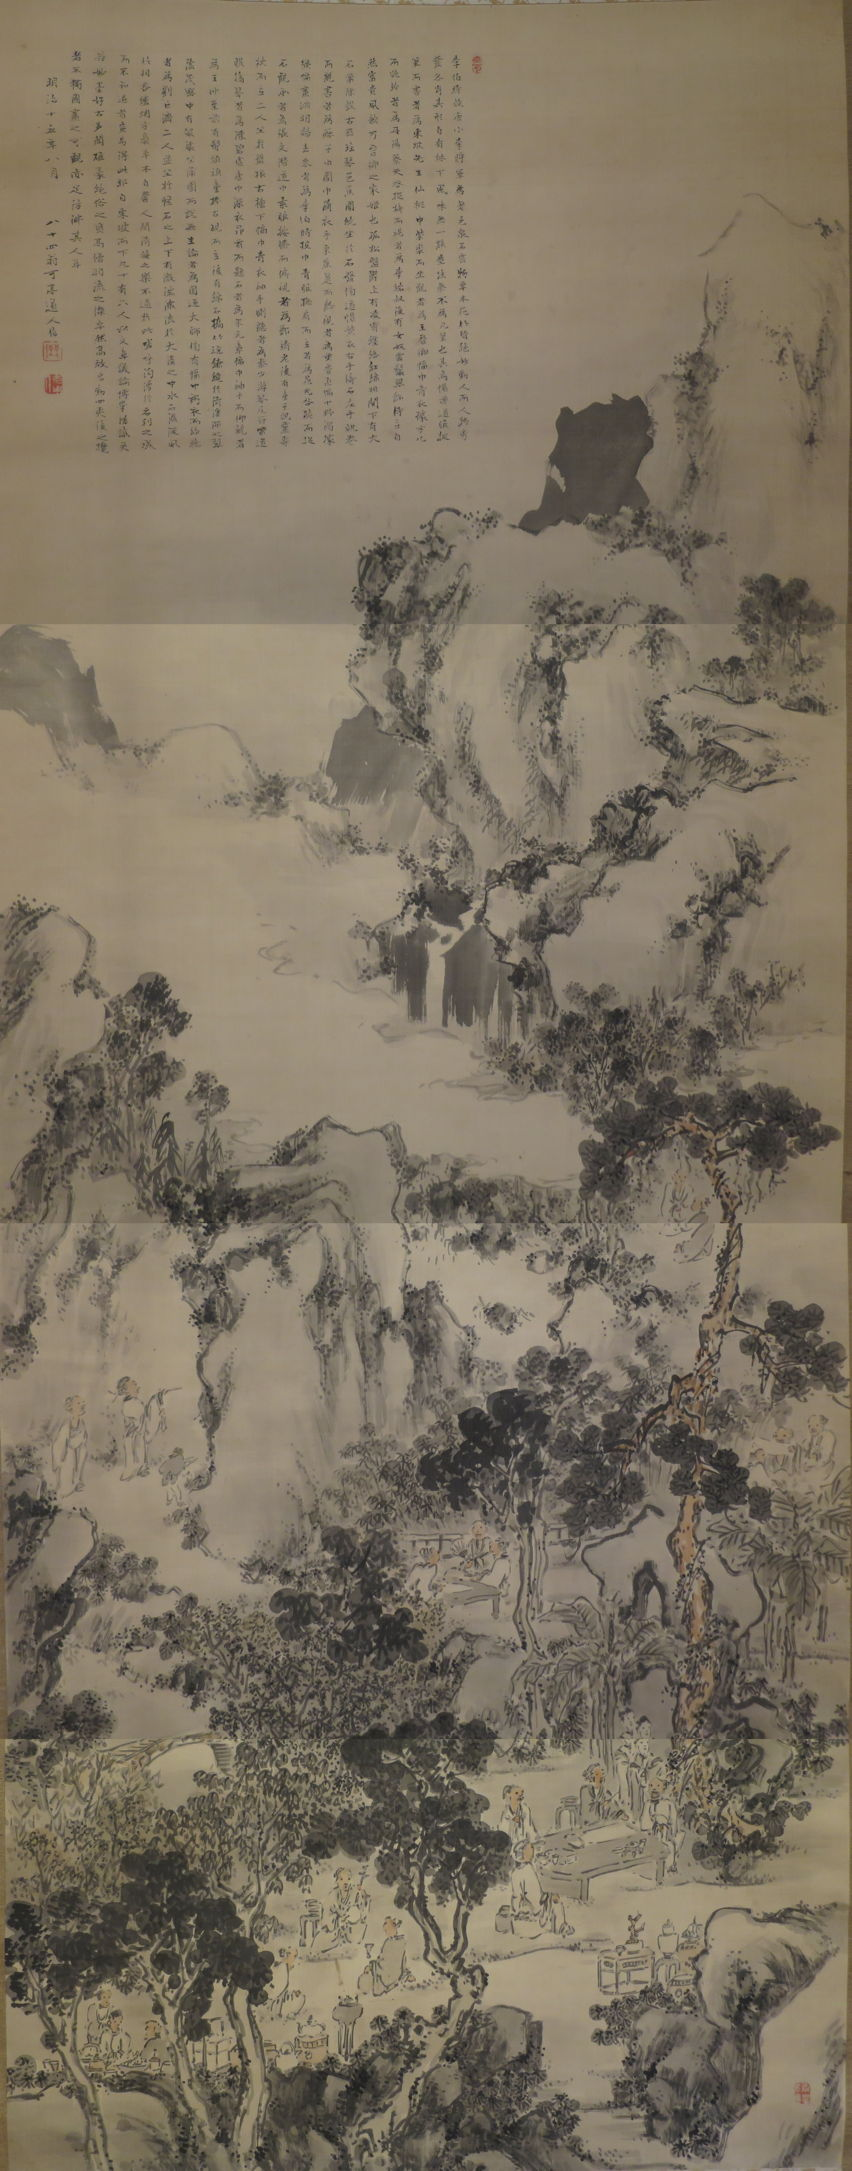 Hagura Katei, Elegant Gathering in the Western Garden (Meji, 1882), ink and light color on silk, dimensions not known, Honolulu Museum of Art. Wikimedia Commons.